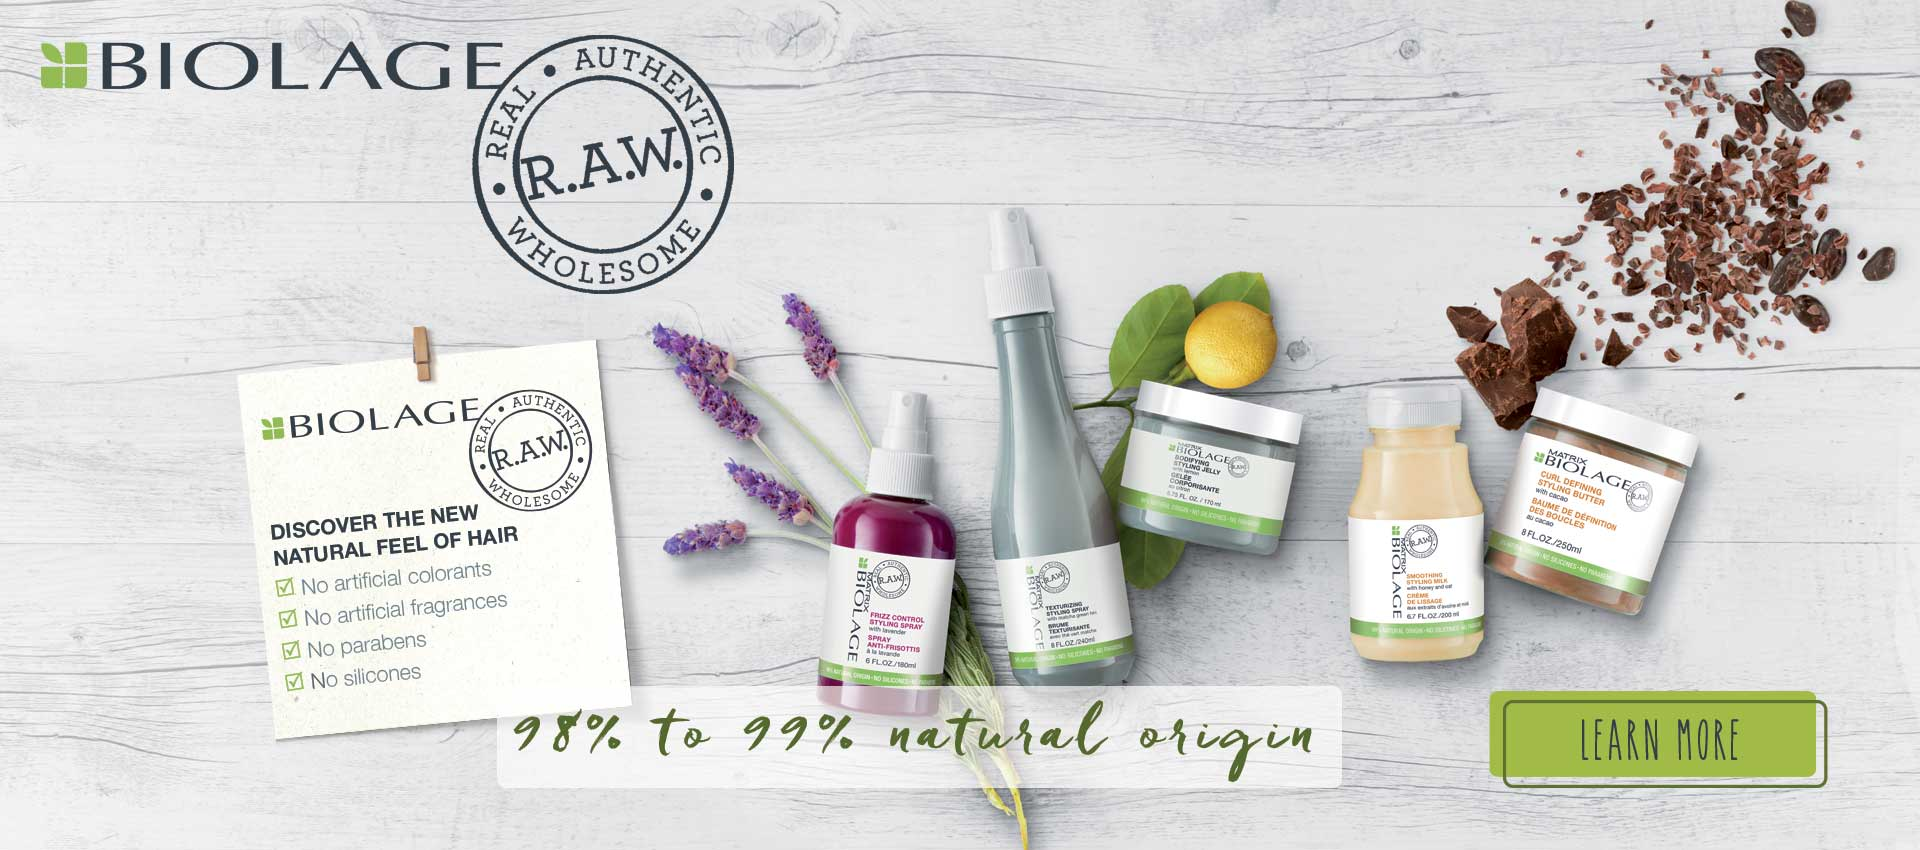 Biolage Raw is up to 95% natural origin haircare. No parabens, no silicones, no artificial colorants, no sulfates